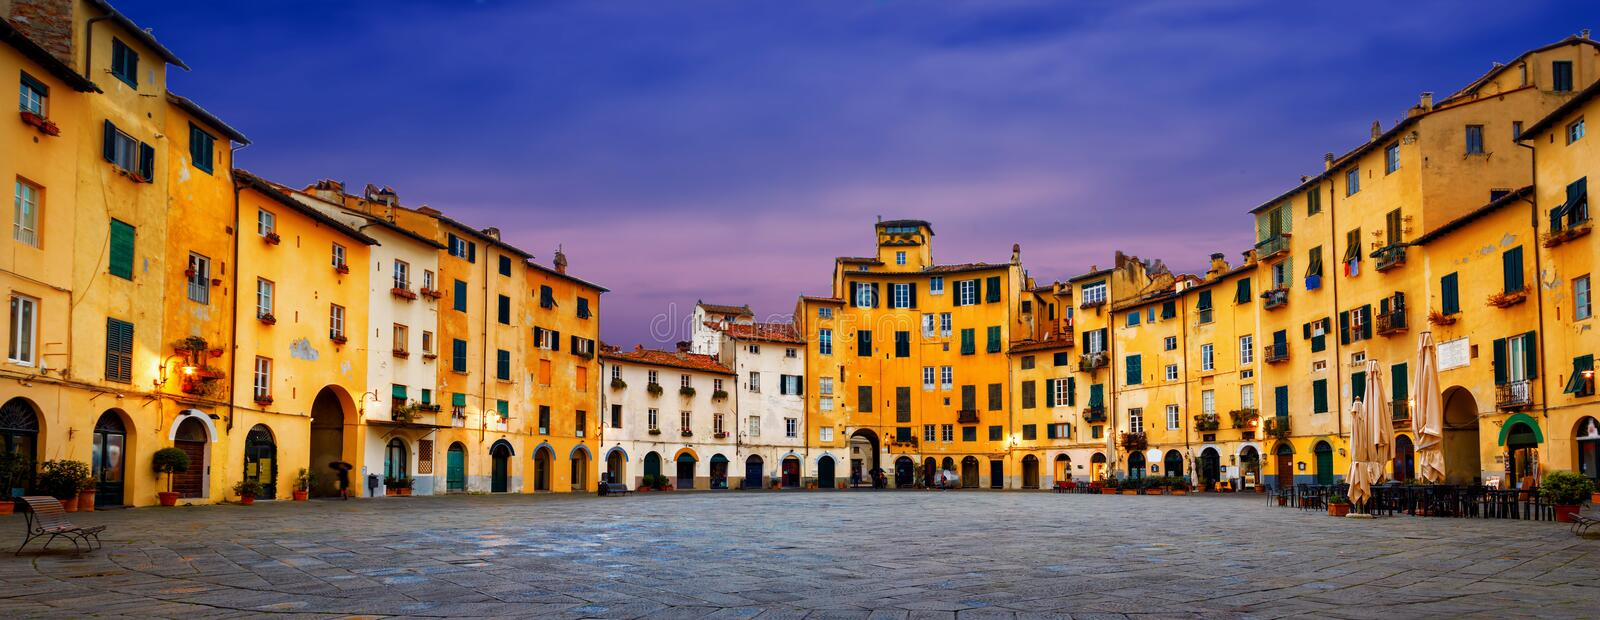 Piazza dell`Anfiteatro old square in Lucca. Tuscany, Italy. Panorama cityscape view stock photography